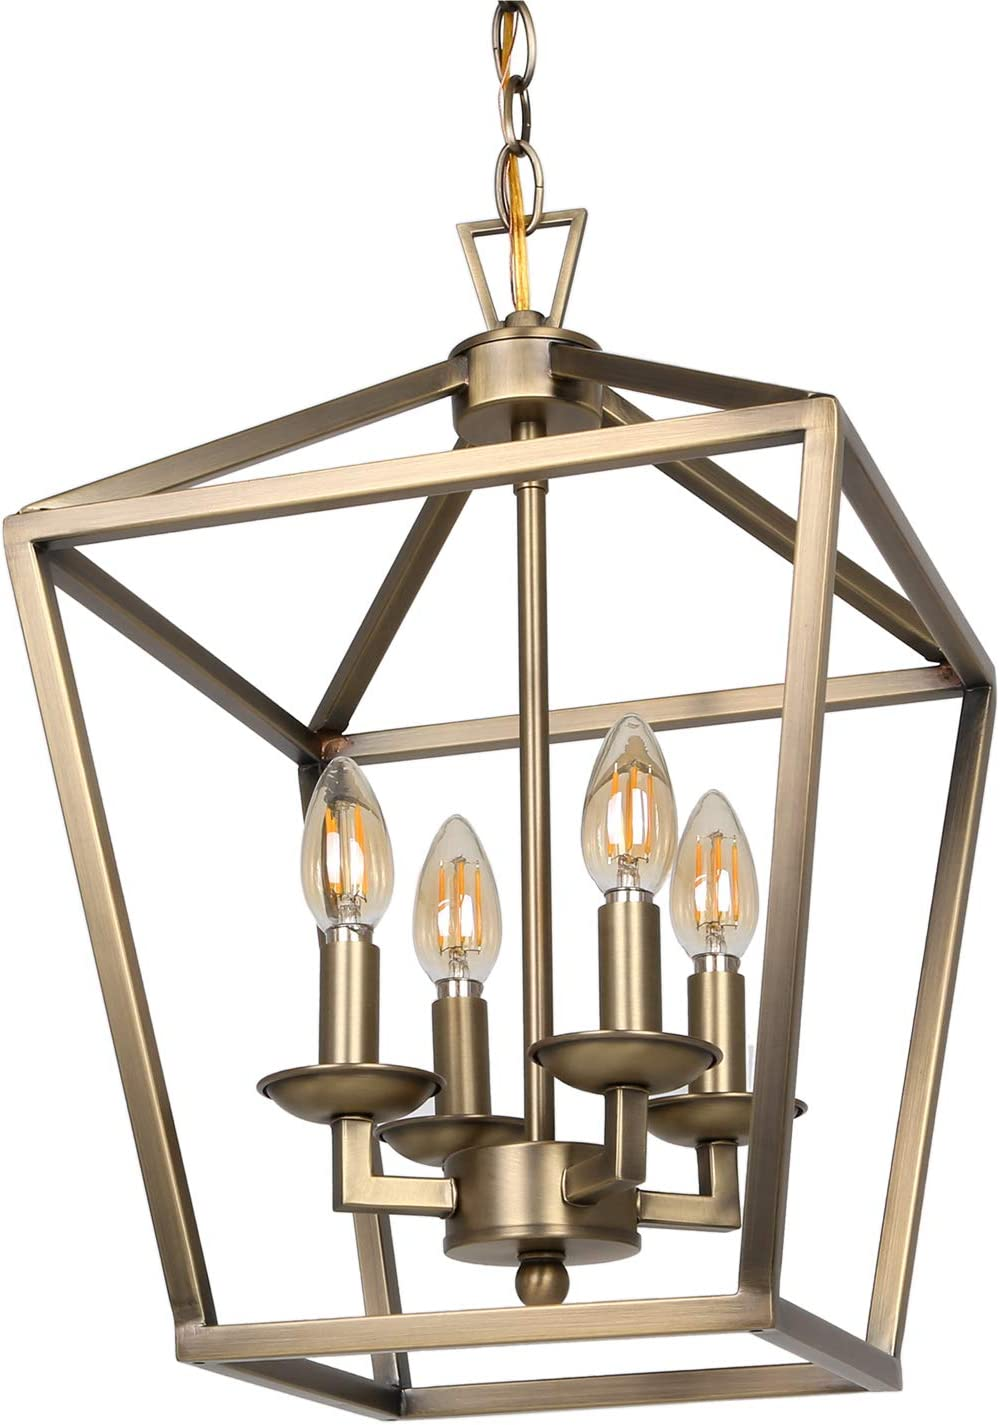 Amazon Prime Day Deals - 4-Light Chandelier Ceiling Light Fixture, Metal Lantern Pendant Lighting for Hallway, Entryway and Dinning Room, 18